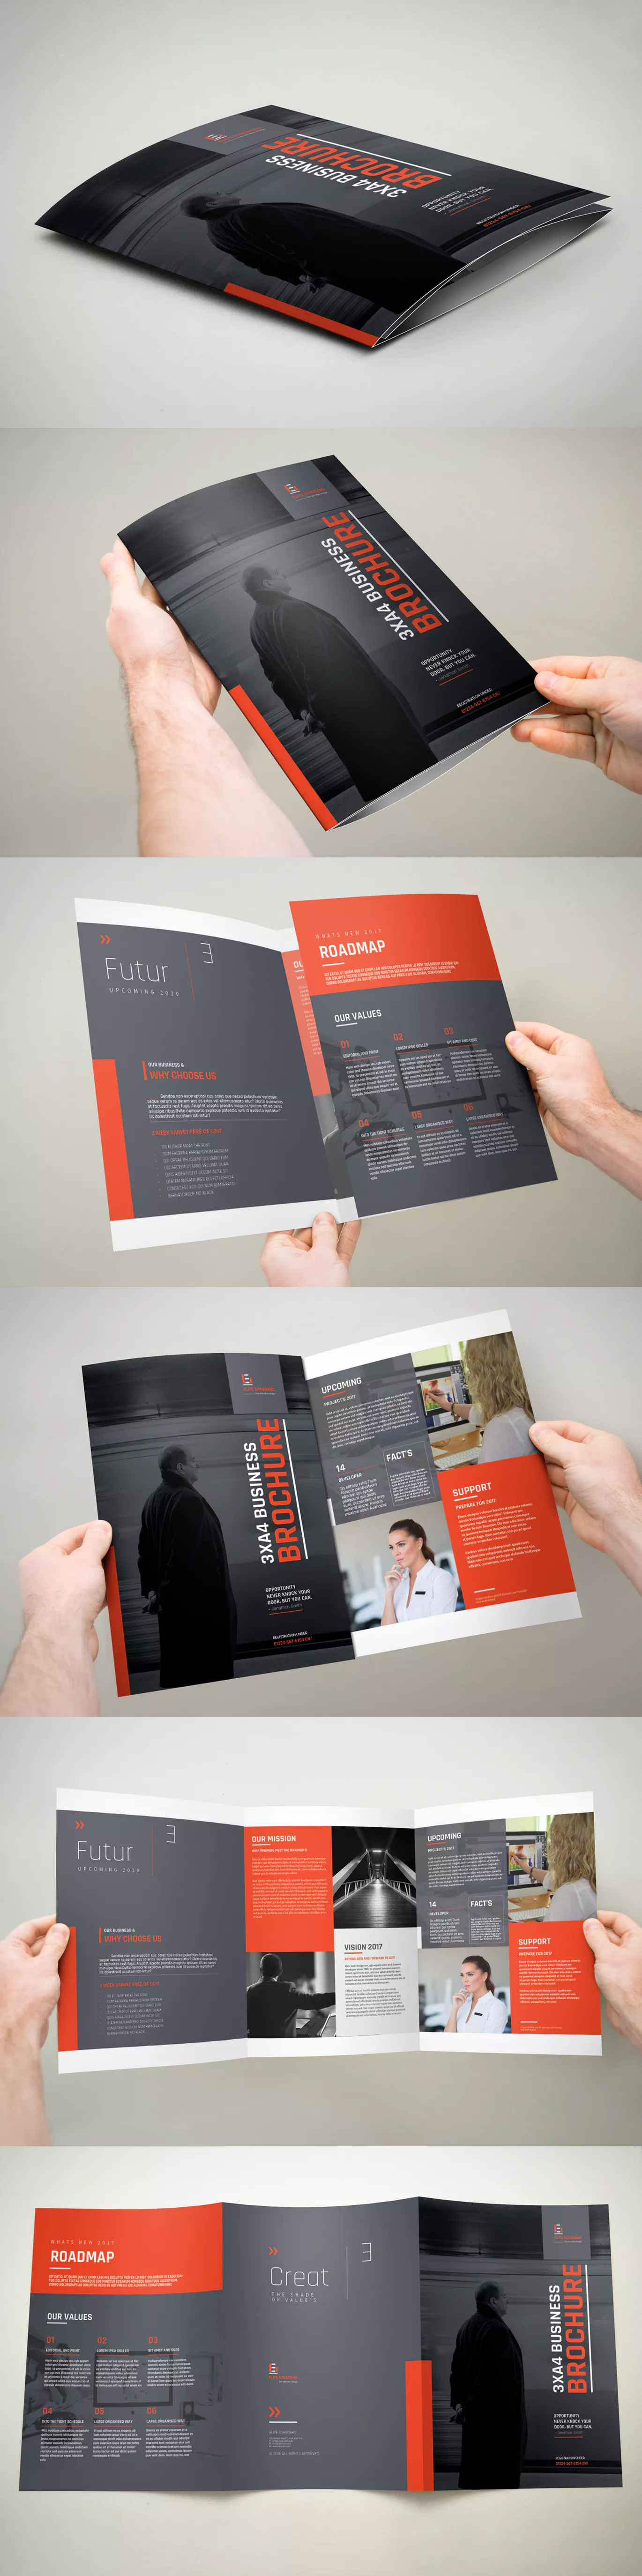 3xA4 Trifold Brochure Template InDesign INDD - A4 | Brochure ...